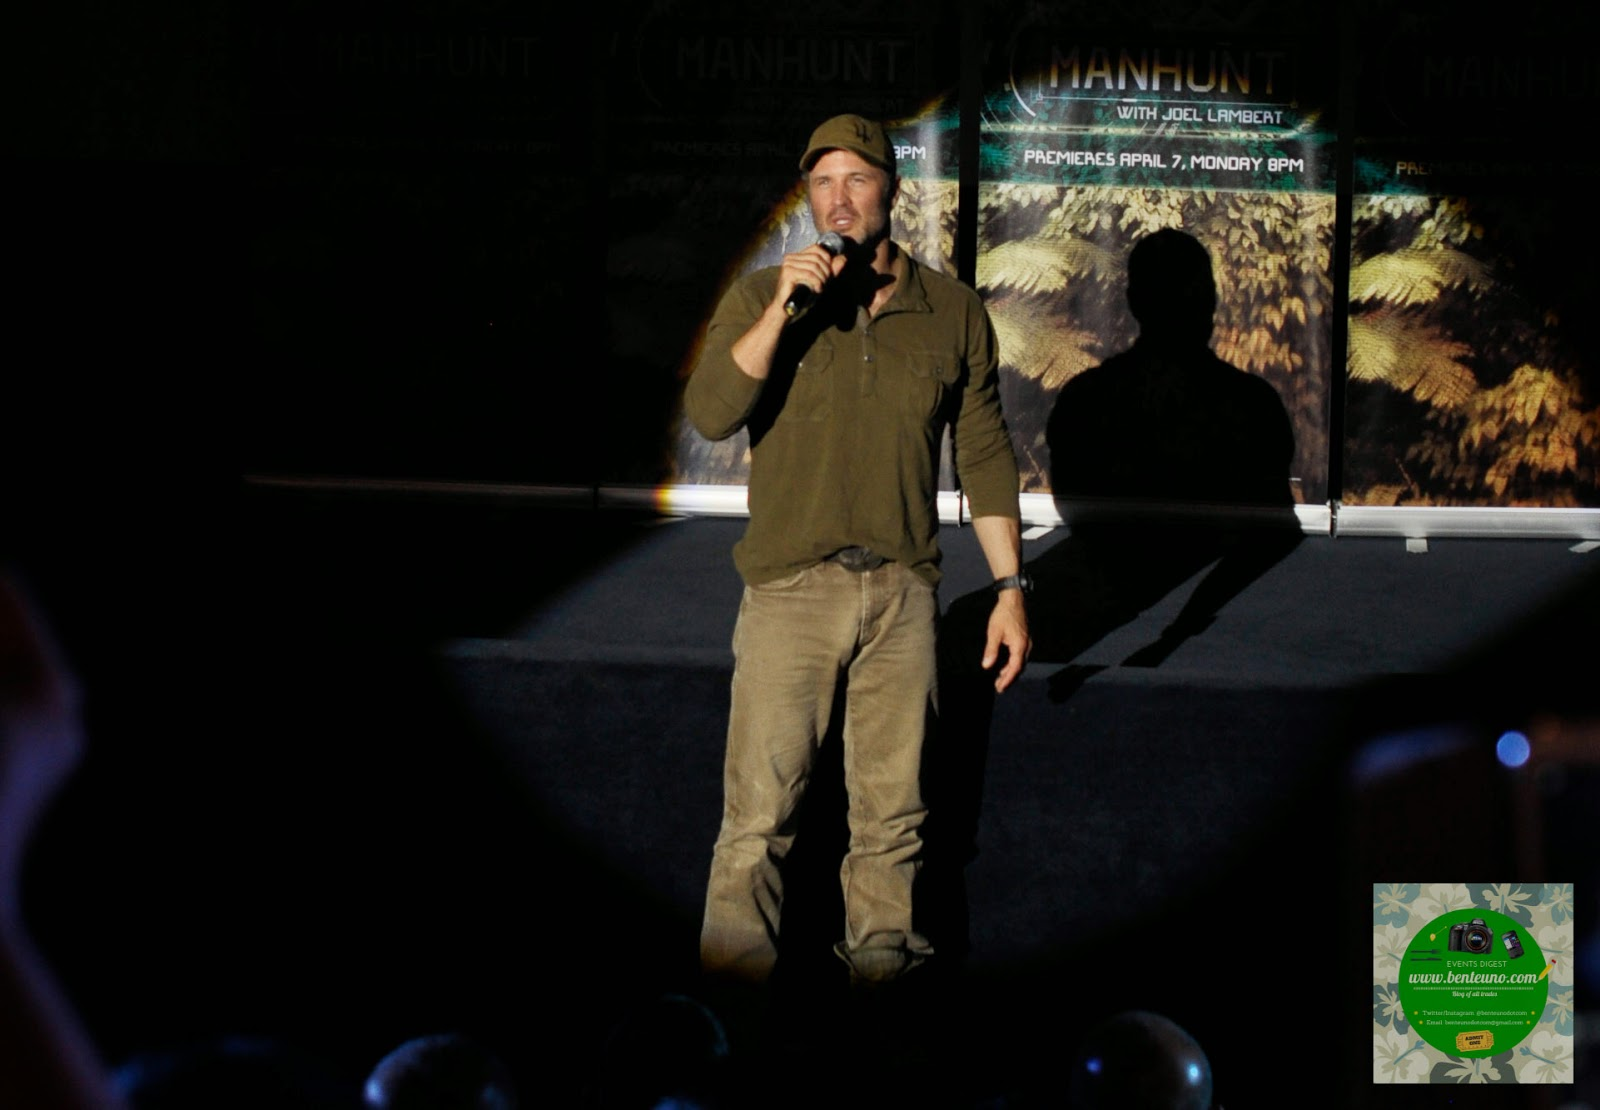 Joel Lambert, the hunted target on Discovery Channel's Manhunt